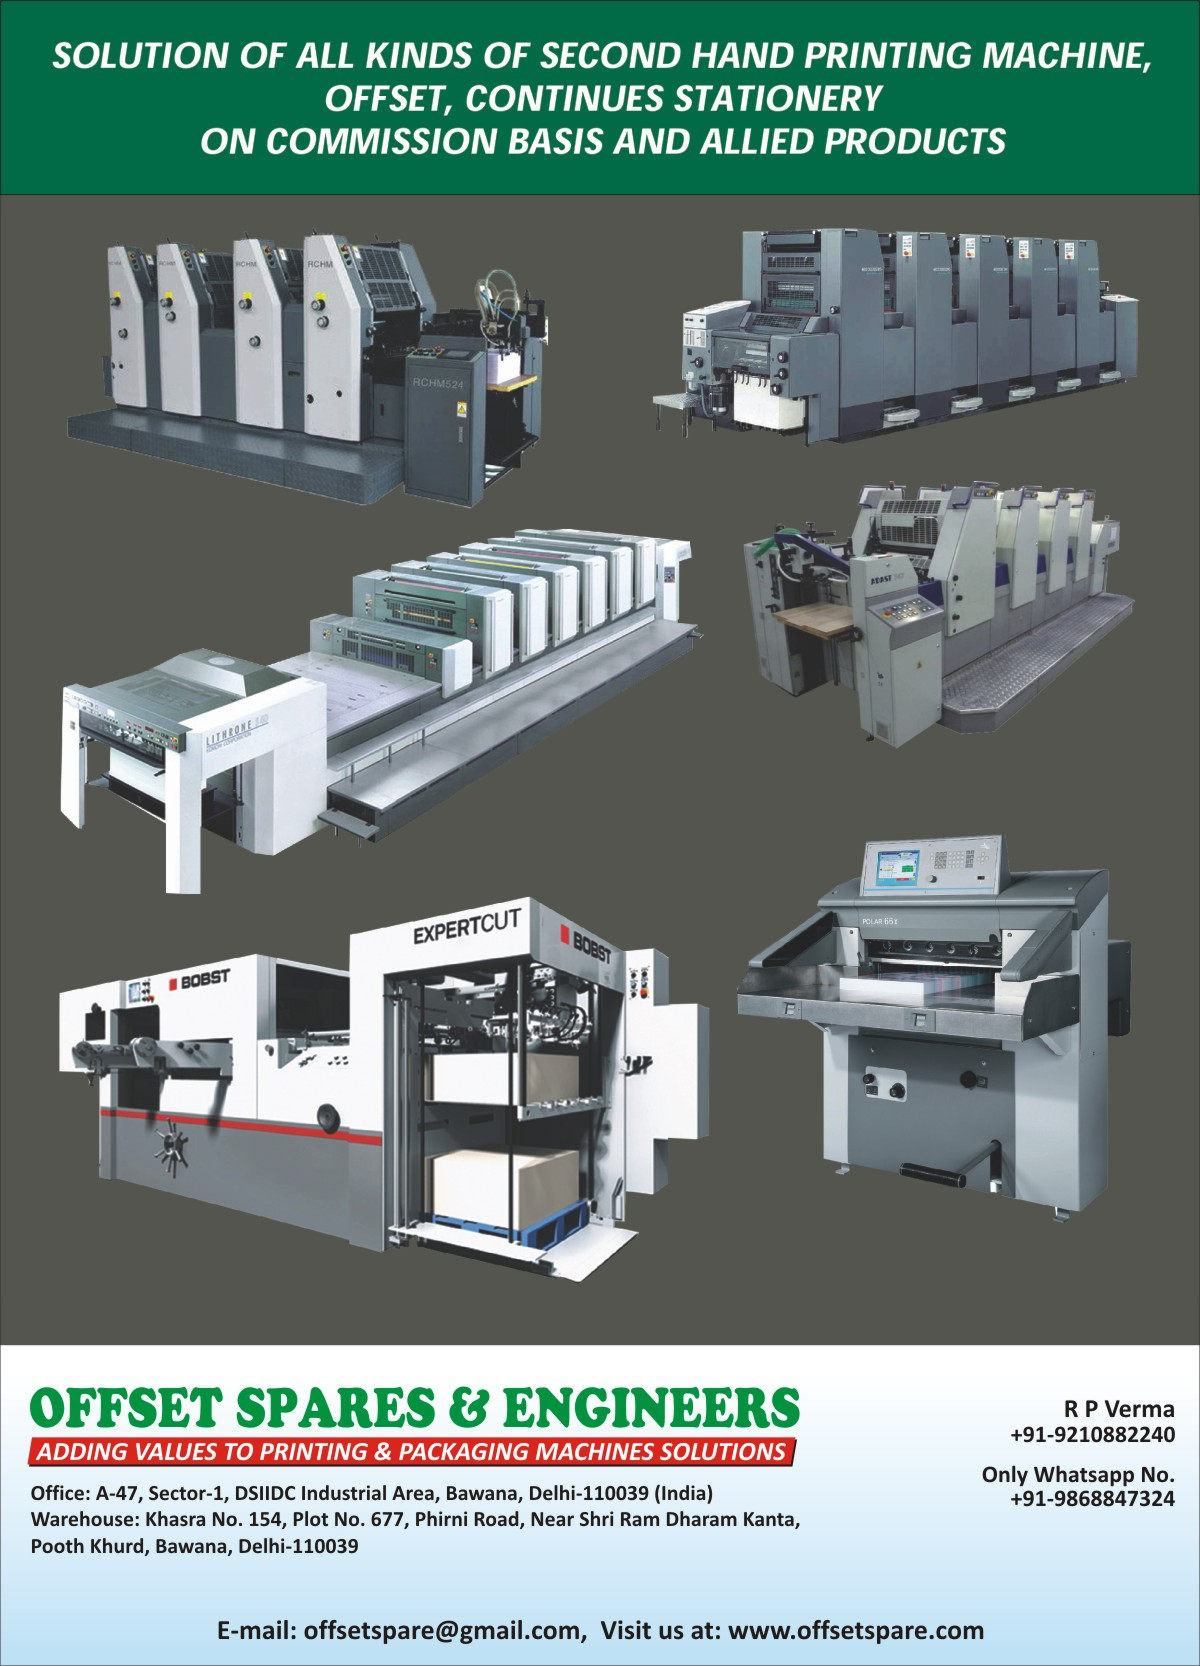 Used Offset Printing Machines Diagram Press Continues Stationary